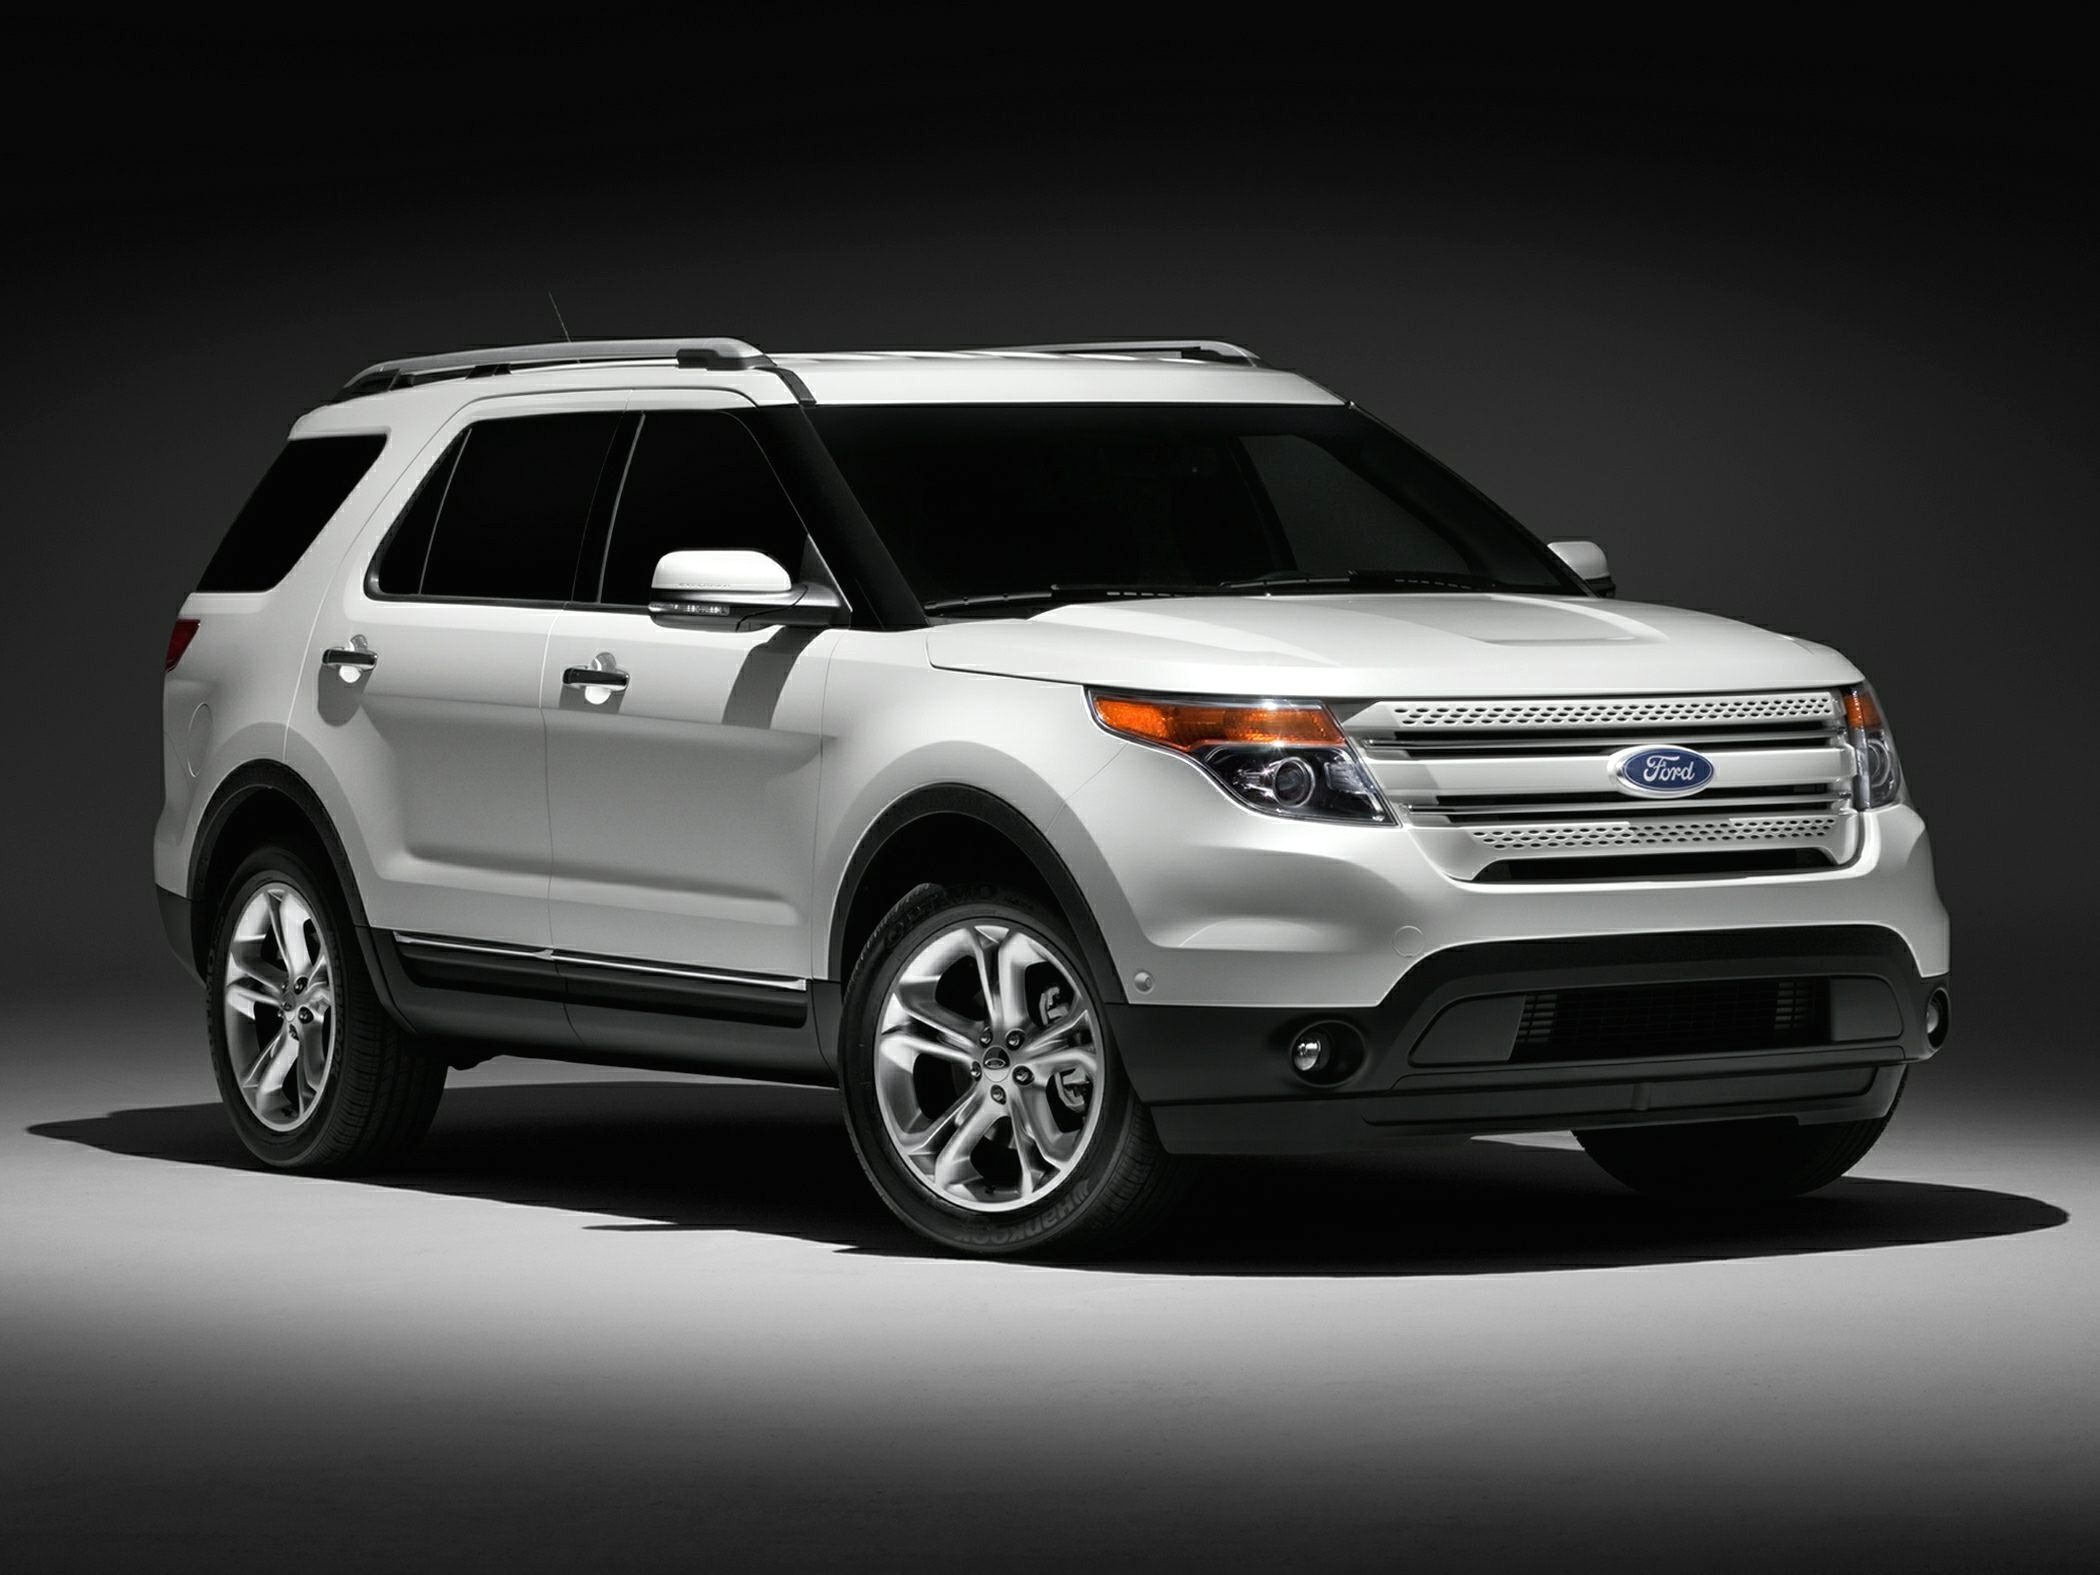 2017 Ford Explorer Sport Trac is truly a fresh automobile